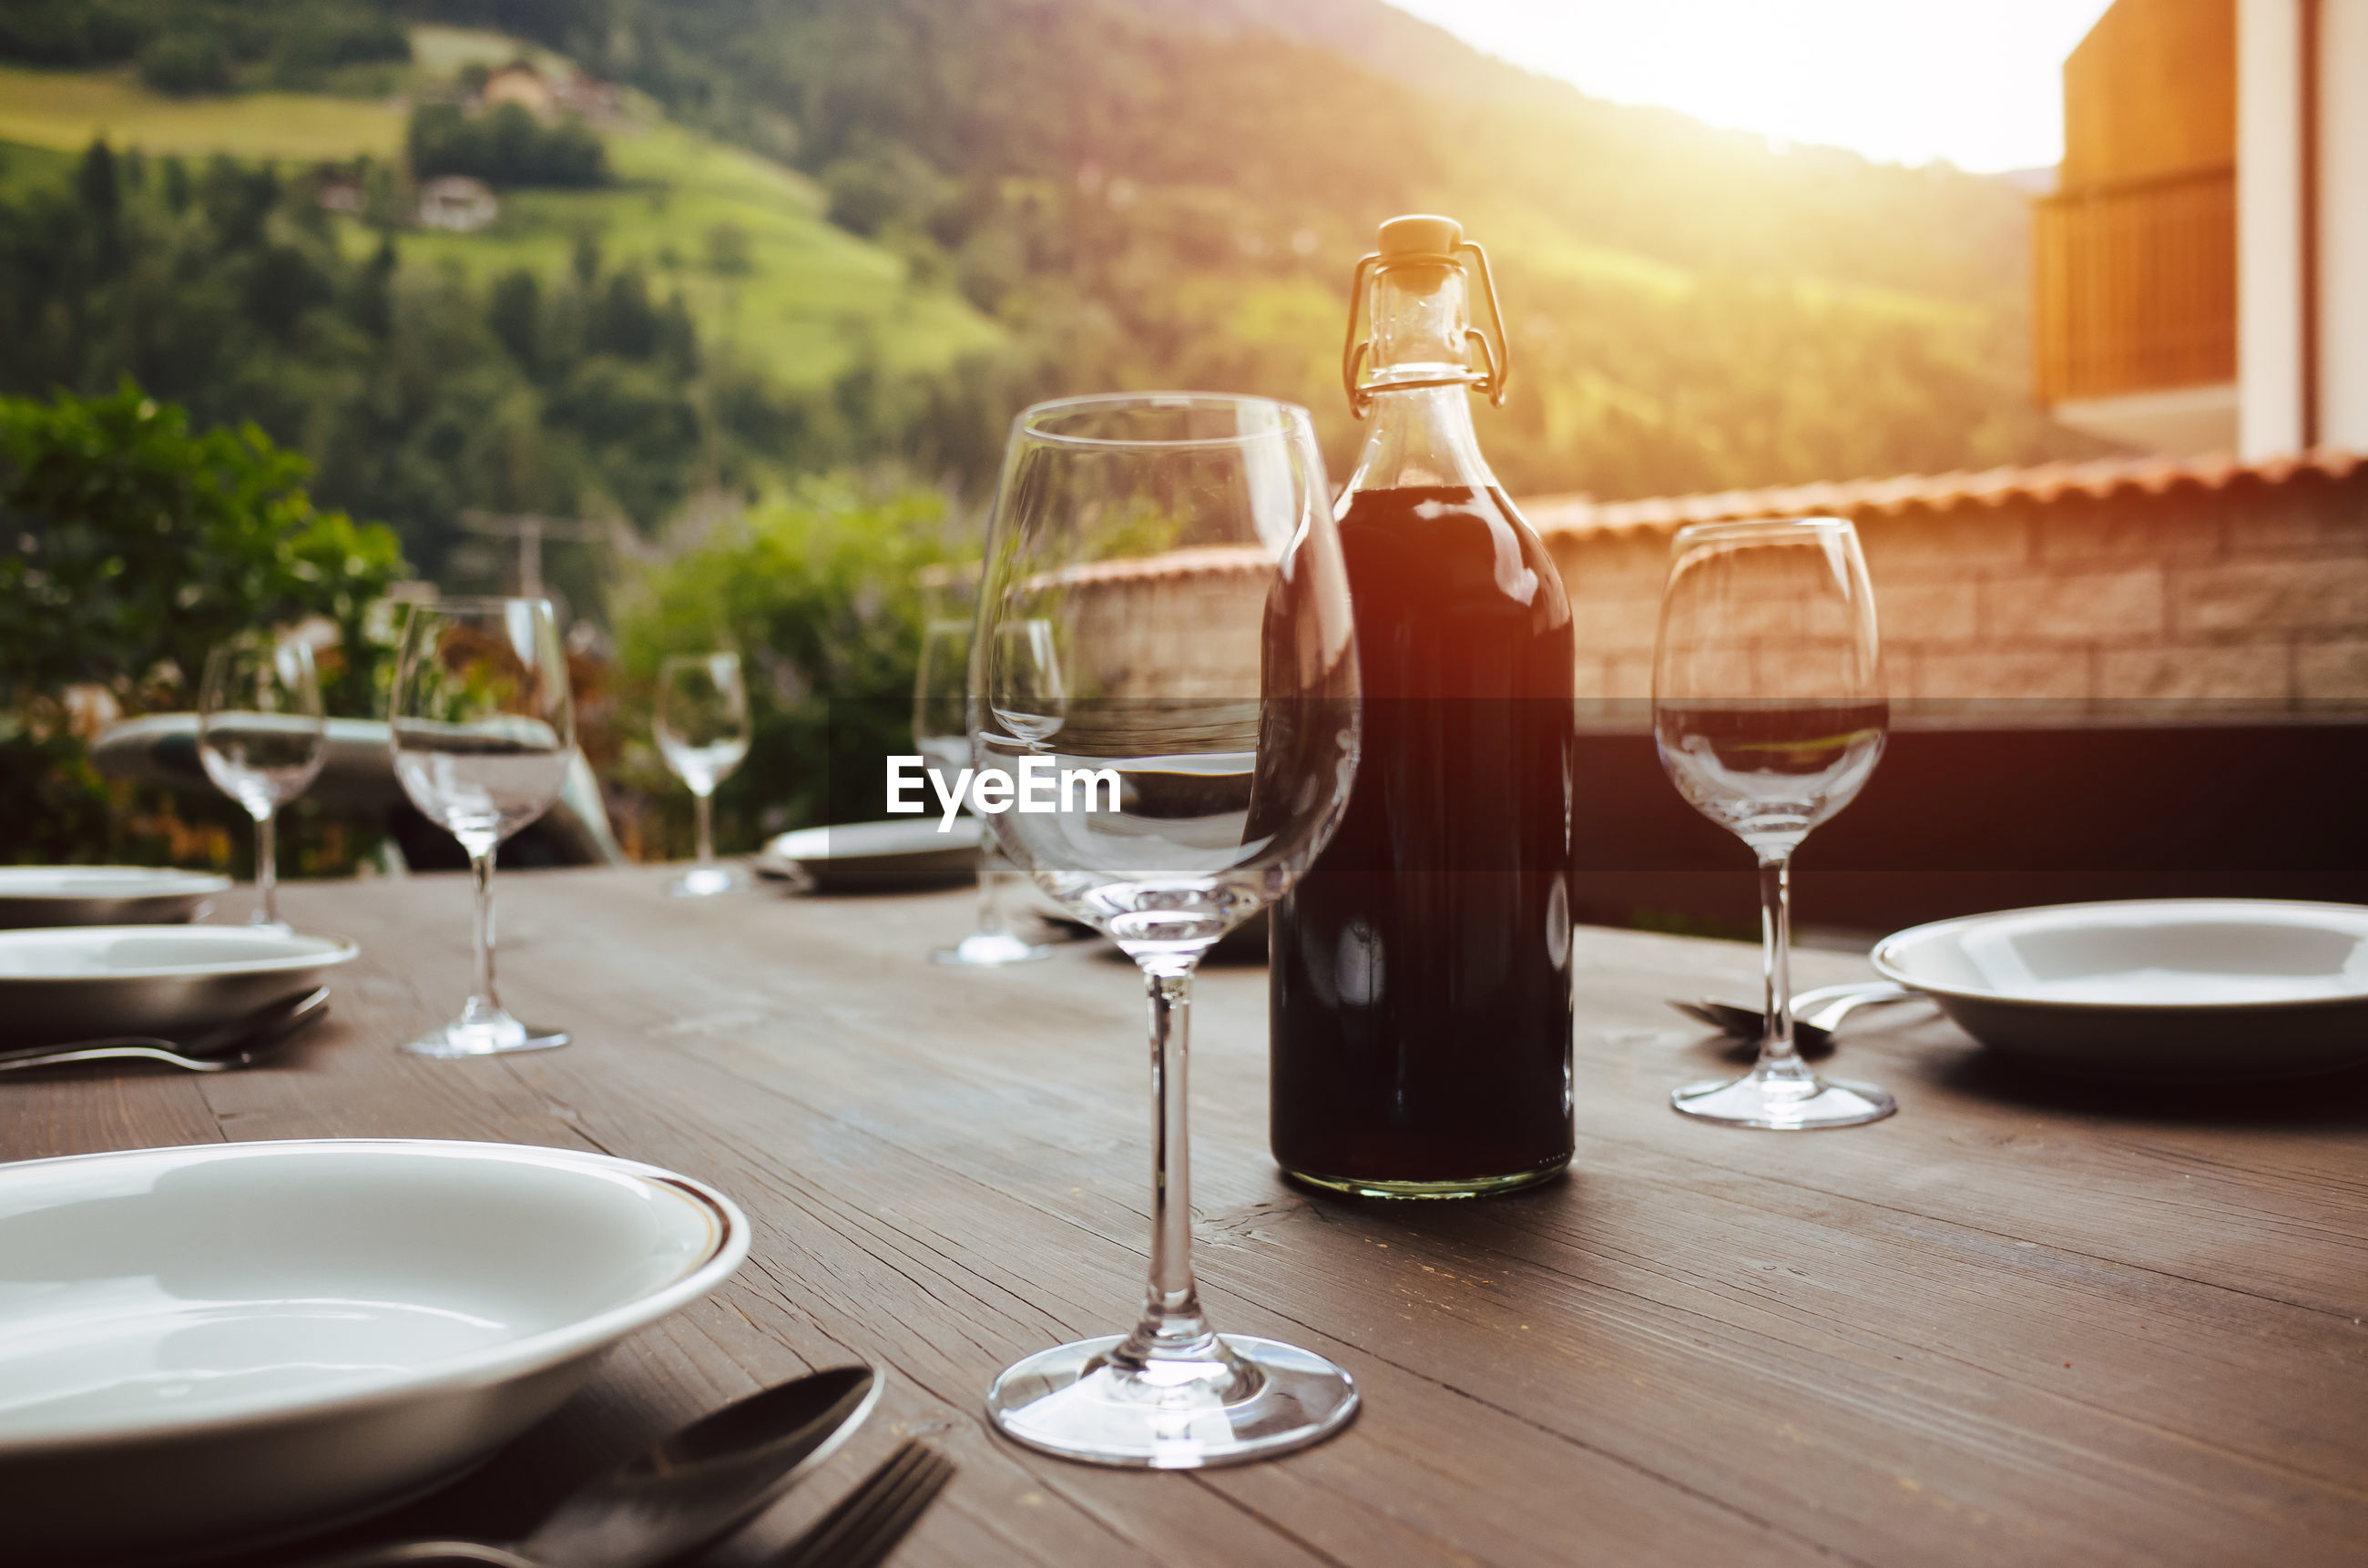 Wineglasses on table outdoors